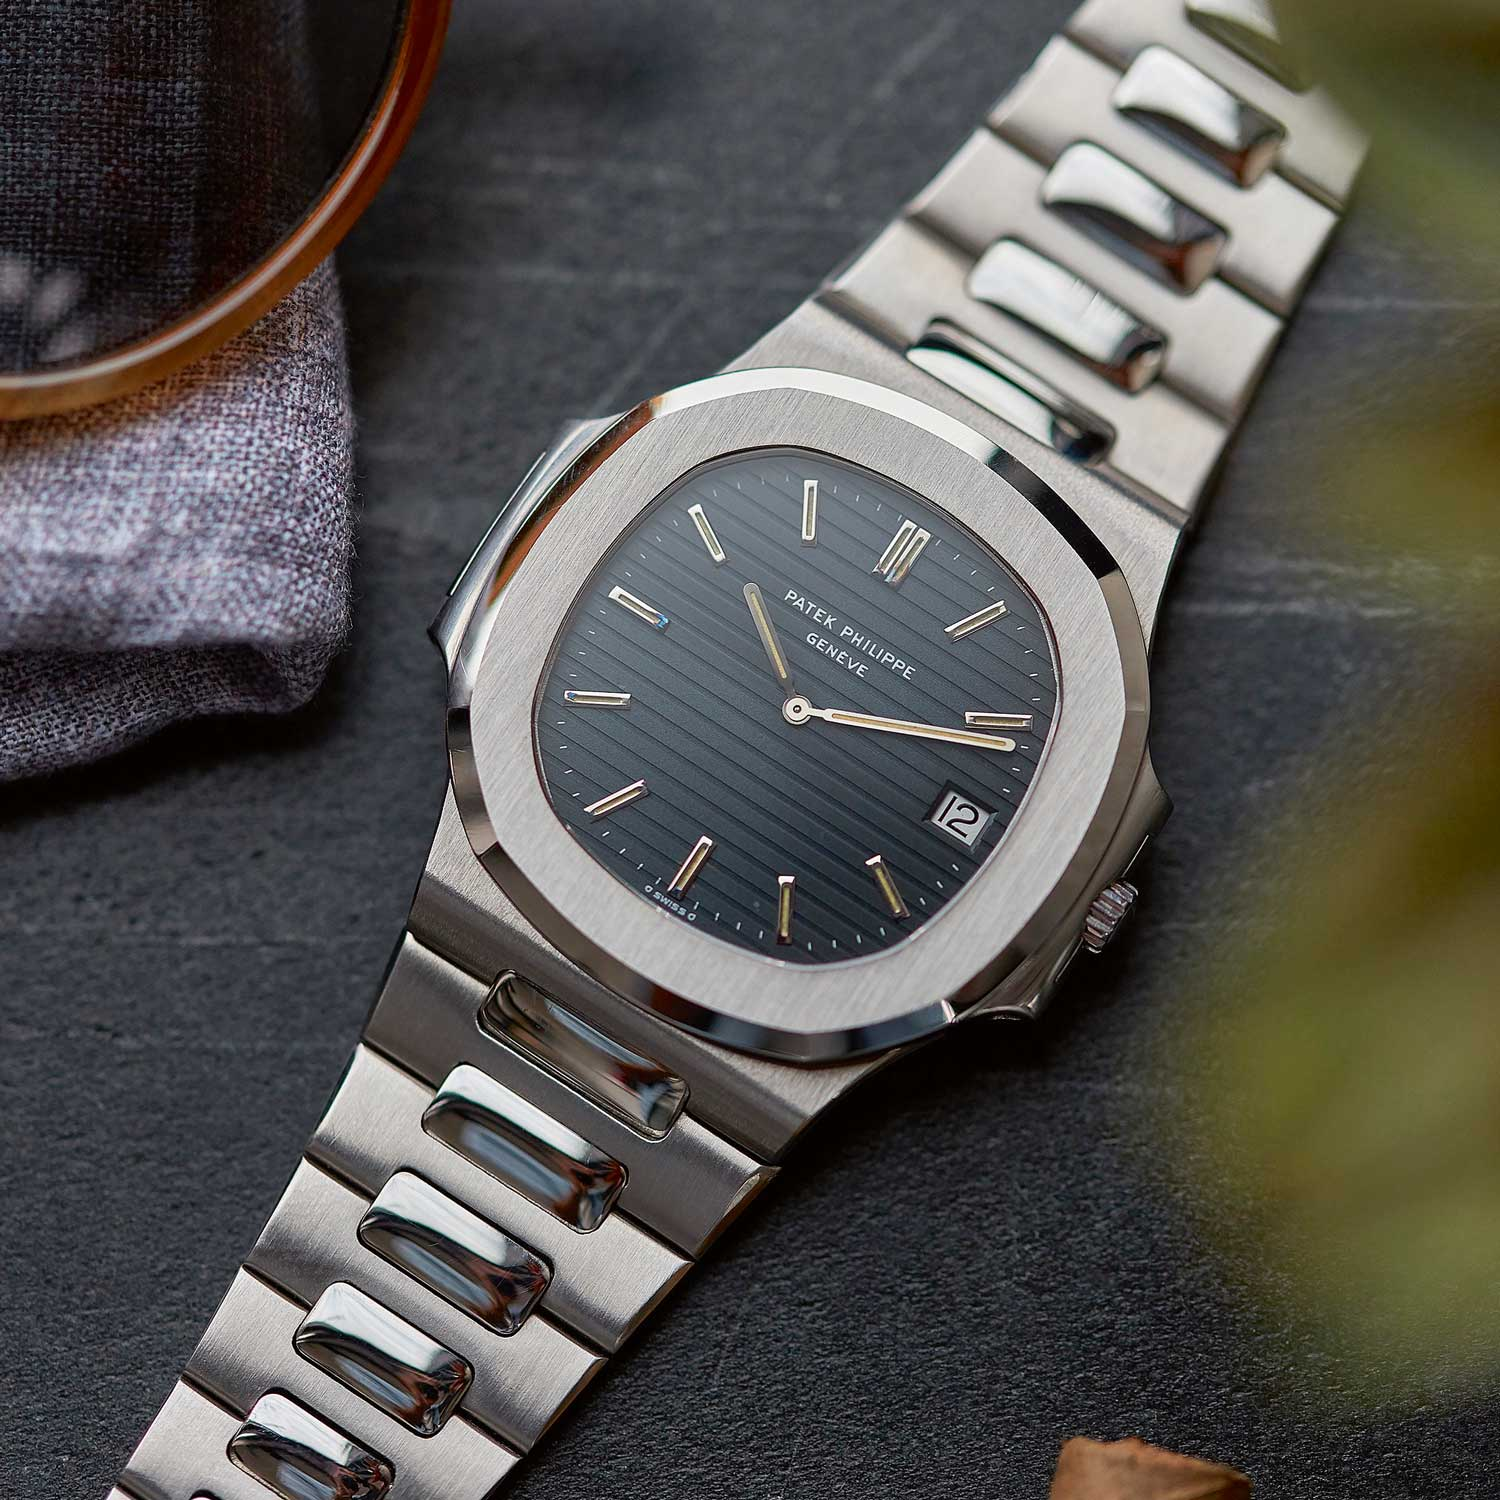 Patek Philippe Nautilus reference 3700/1A launched in 1976 (Image: A Collected Man)